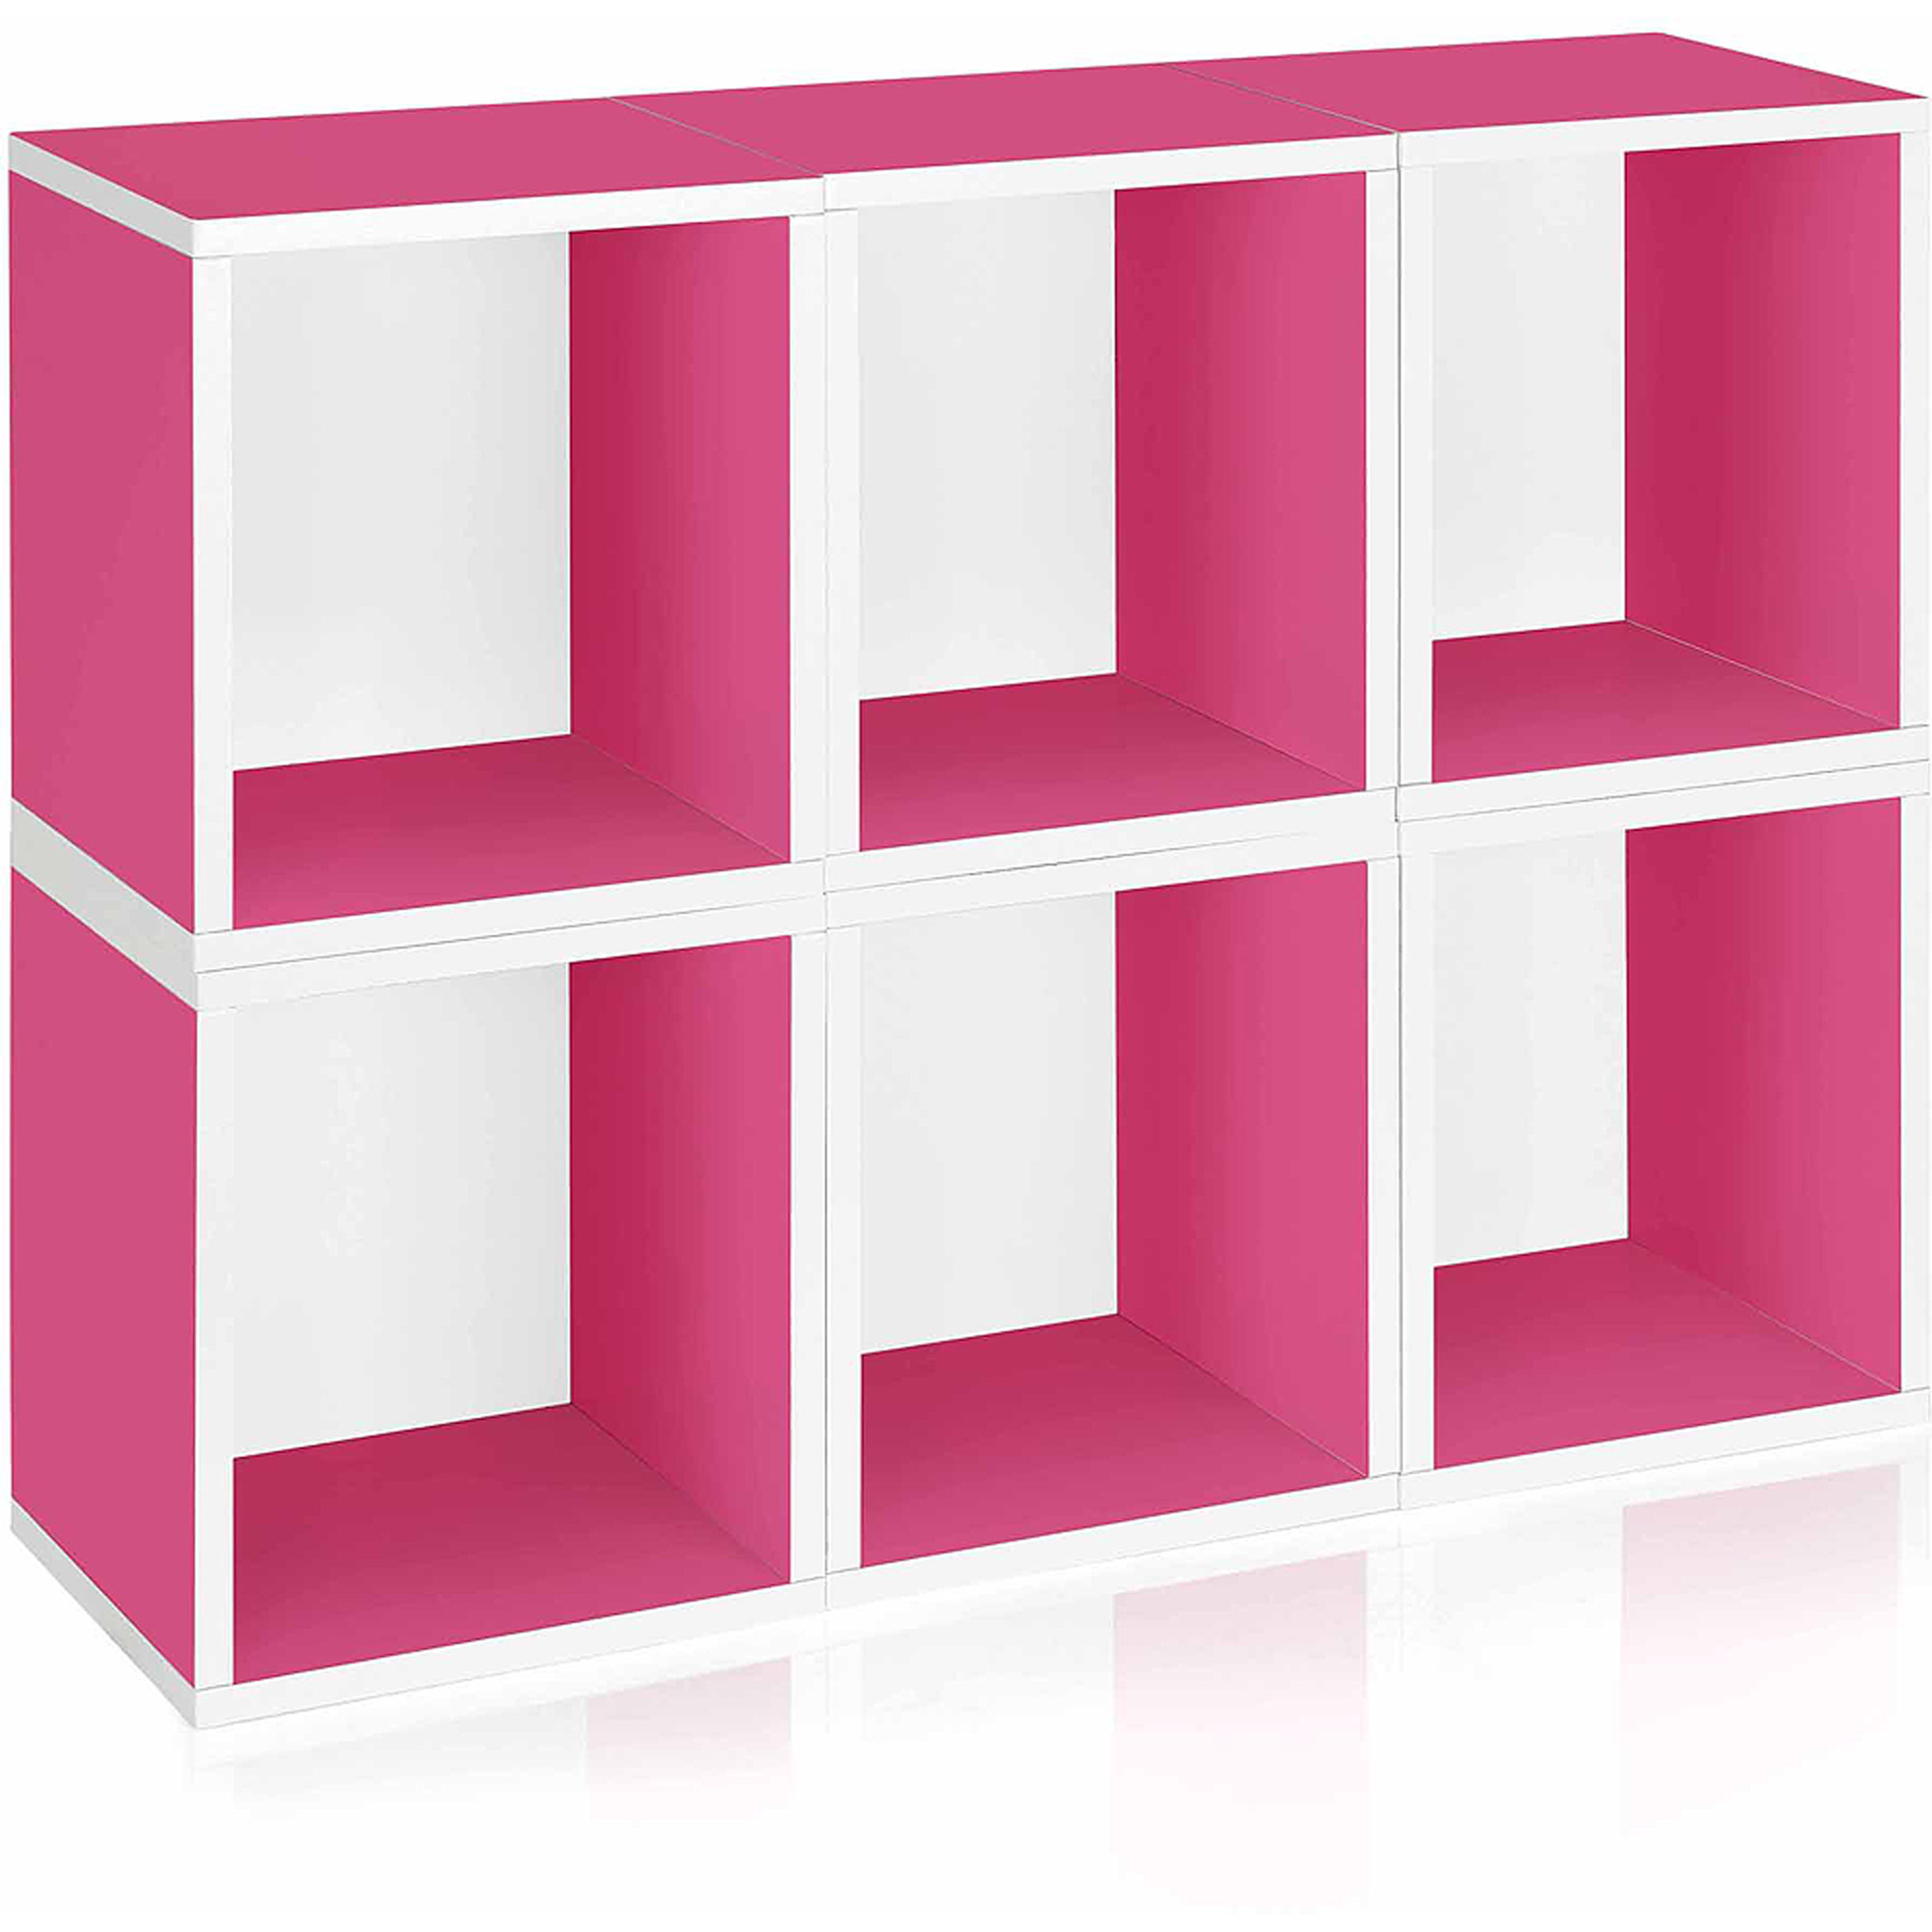 Way Basics Eco Stackable Modular Storage Cubes Plus, Pink, 6-Pack